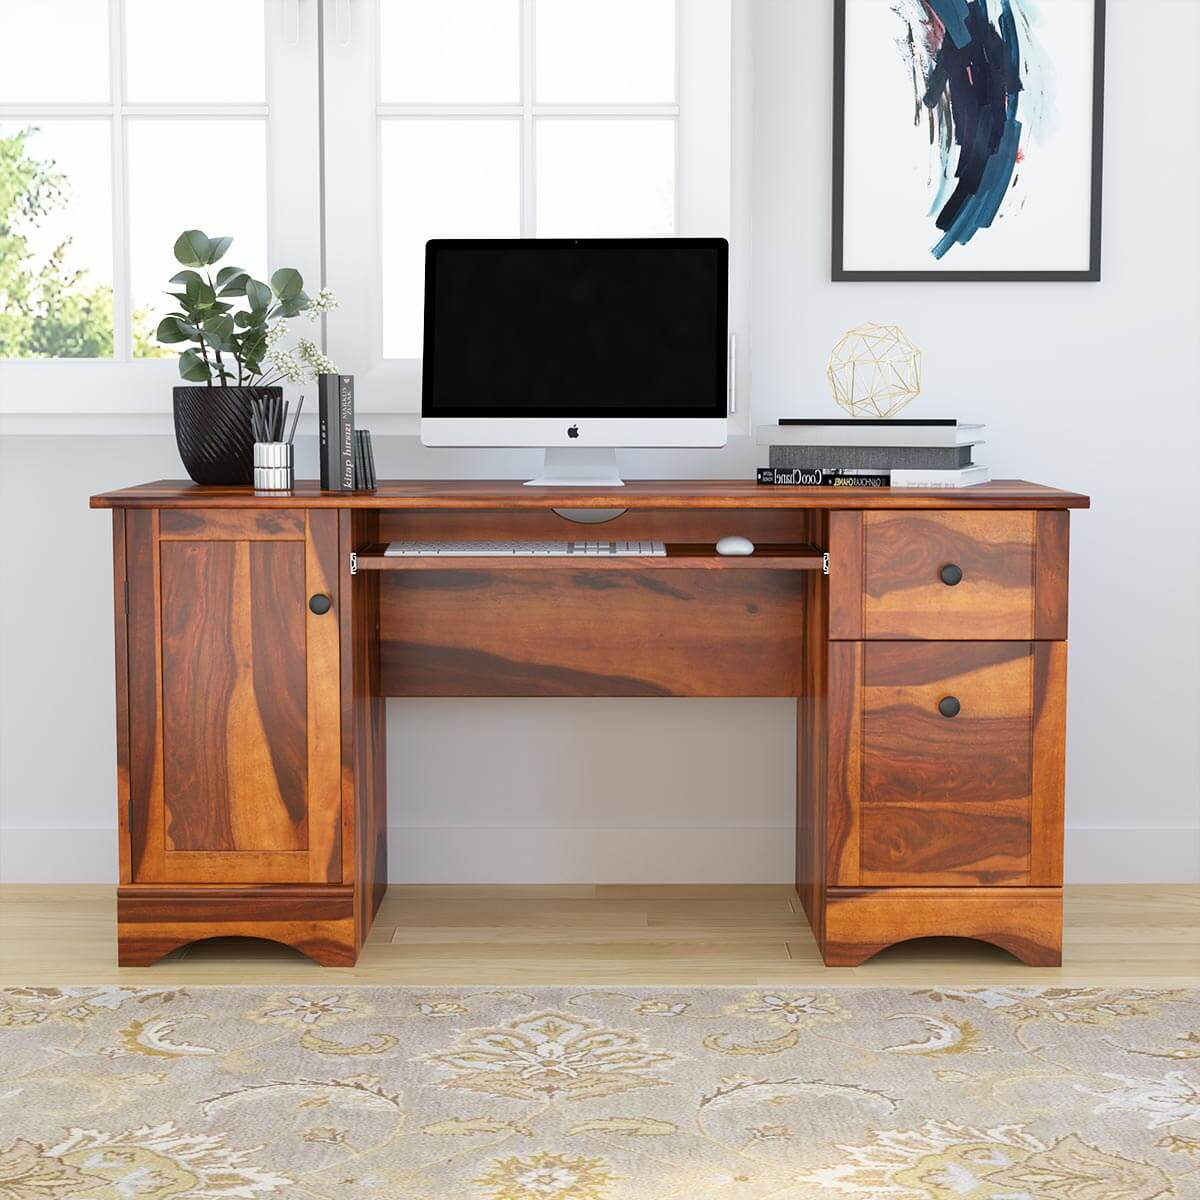 Gisela Rustic Solid Wood Computer Desk With Cabinet  Drawers